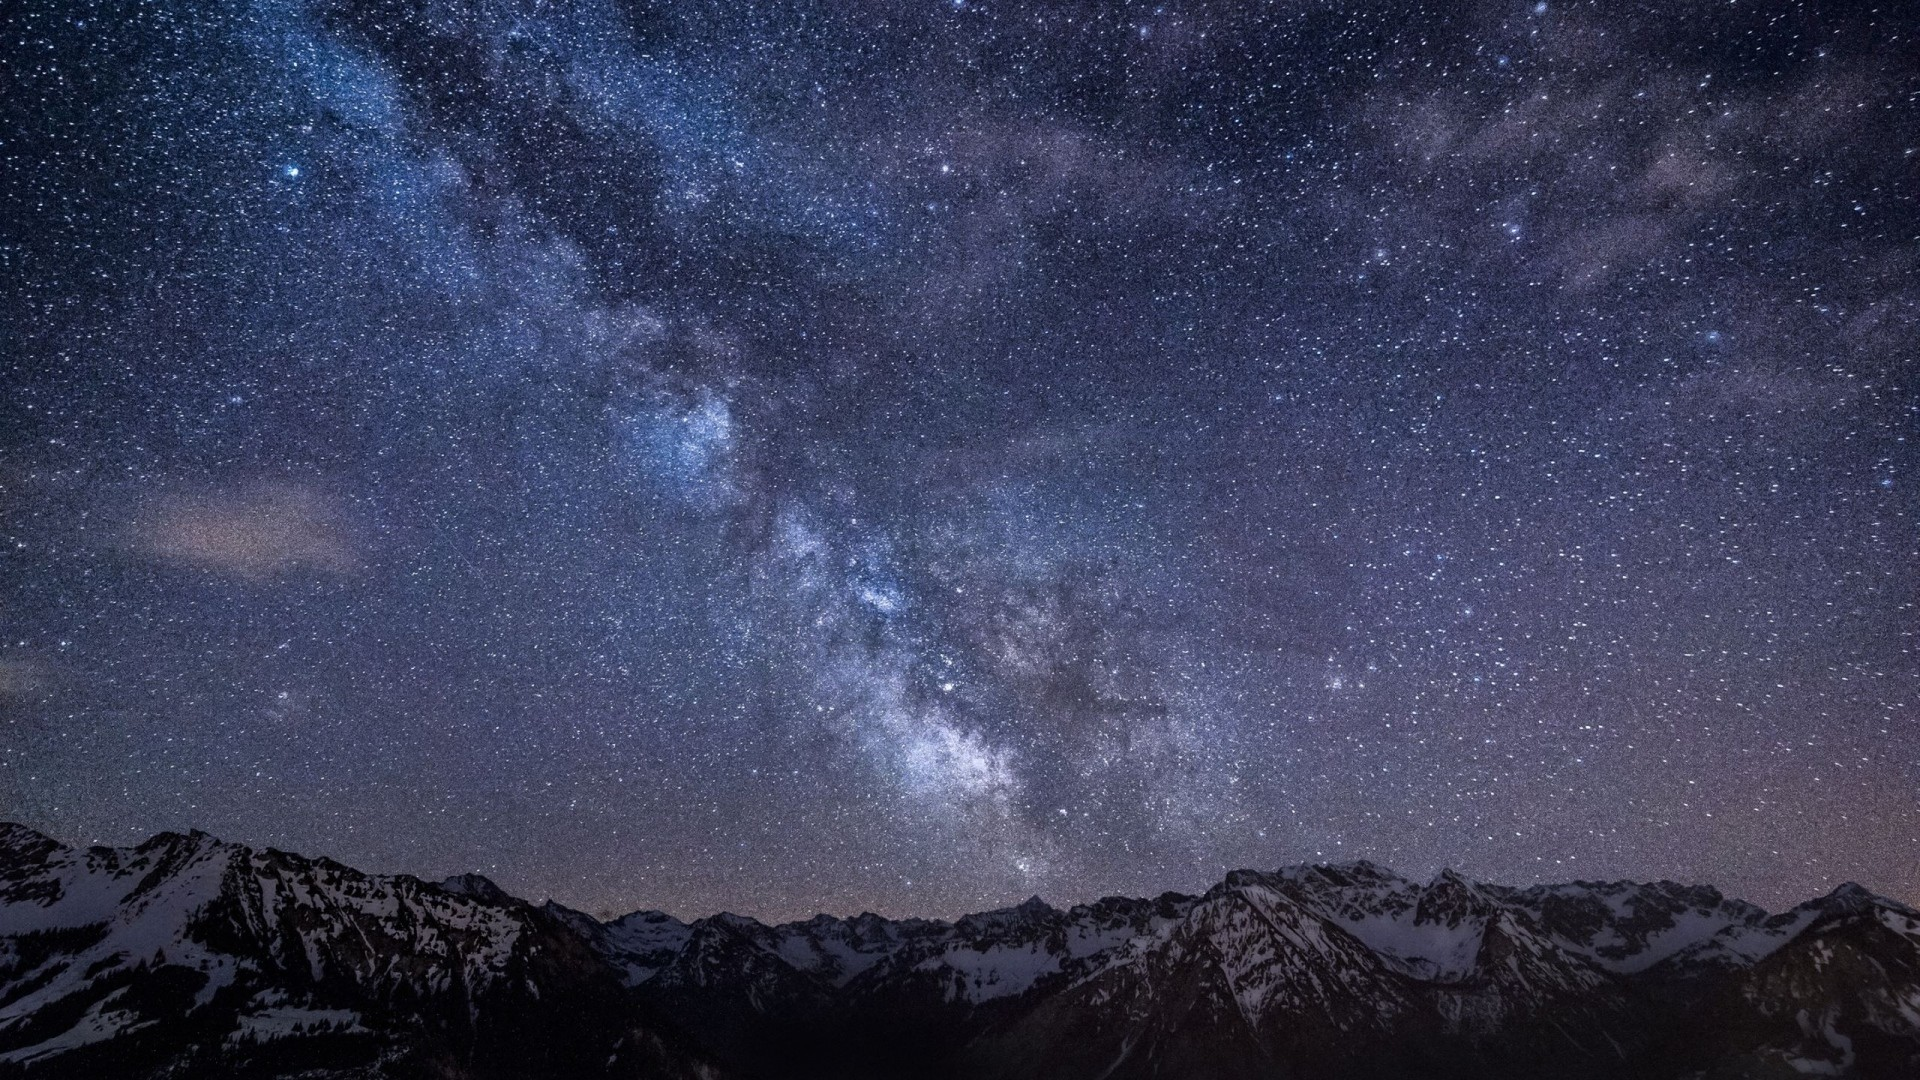 Wallpaper winter, night, mountains, road, planet, fantastic  landscape | Wallpapers | Pinterest | Winter night, Planets and Mountains